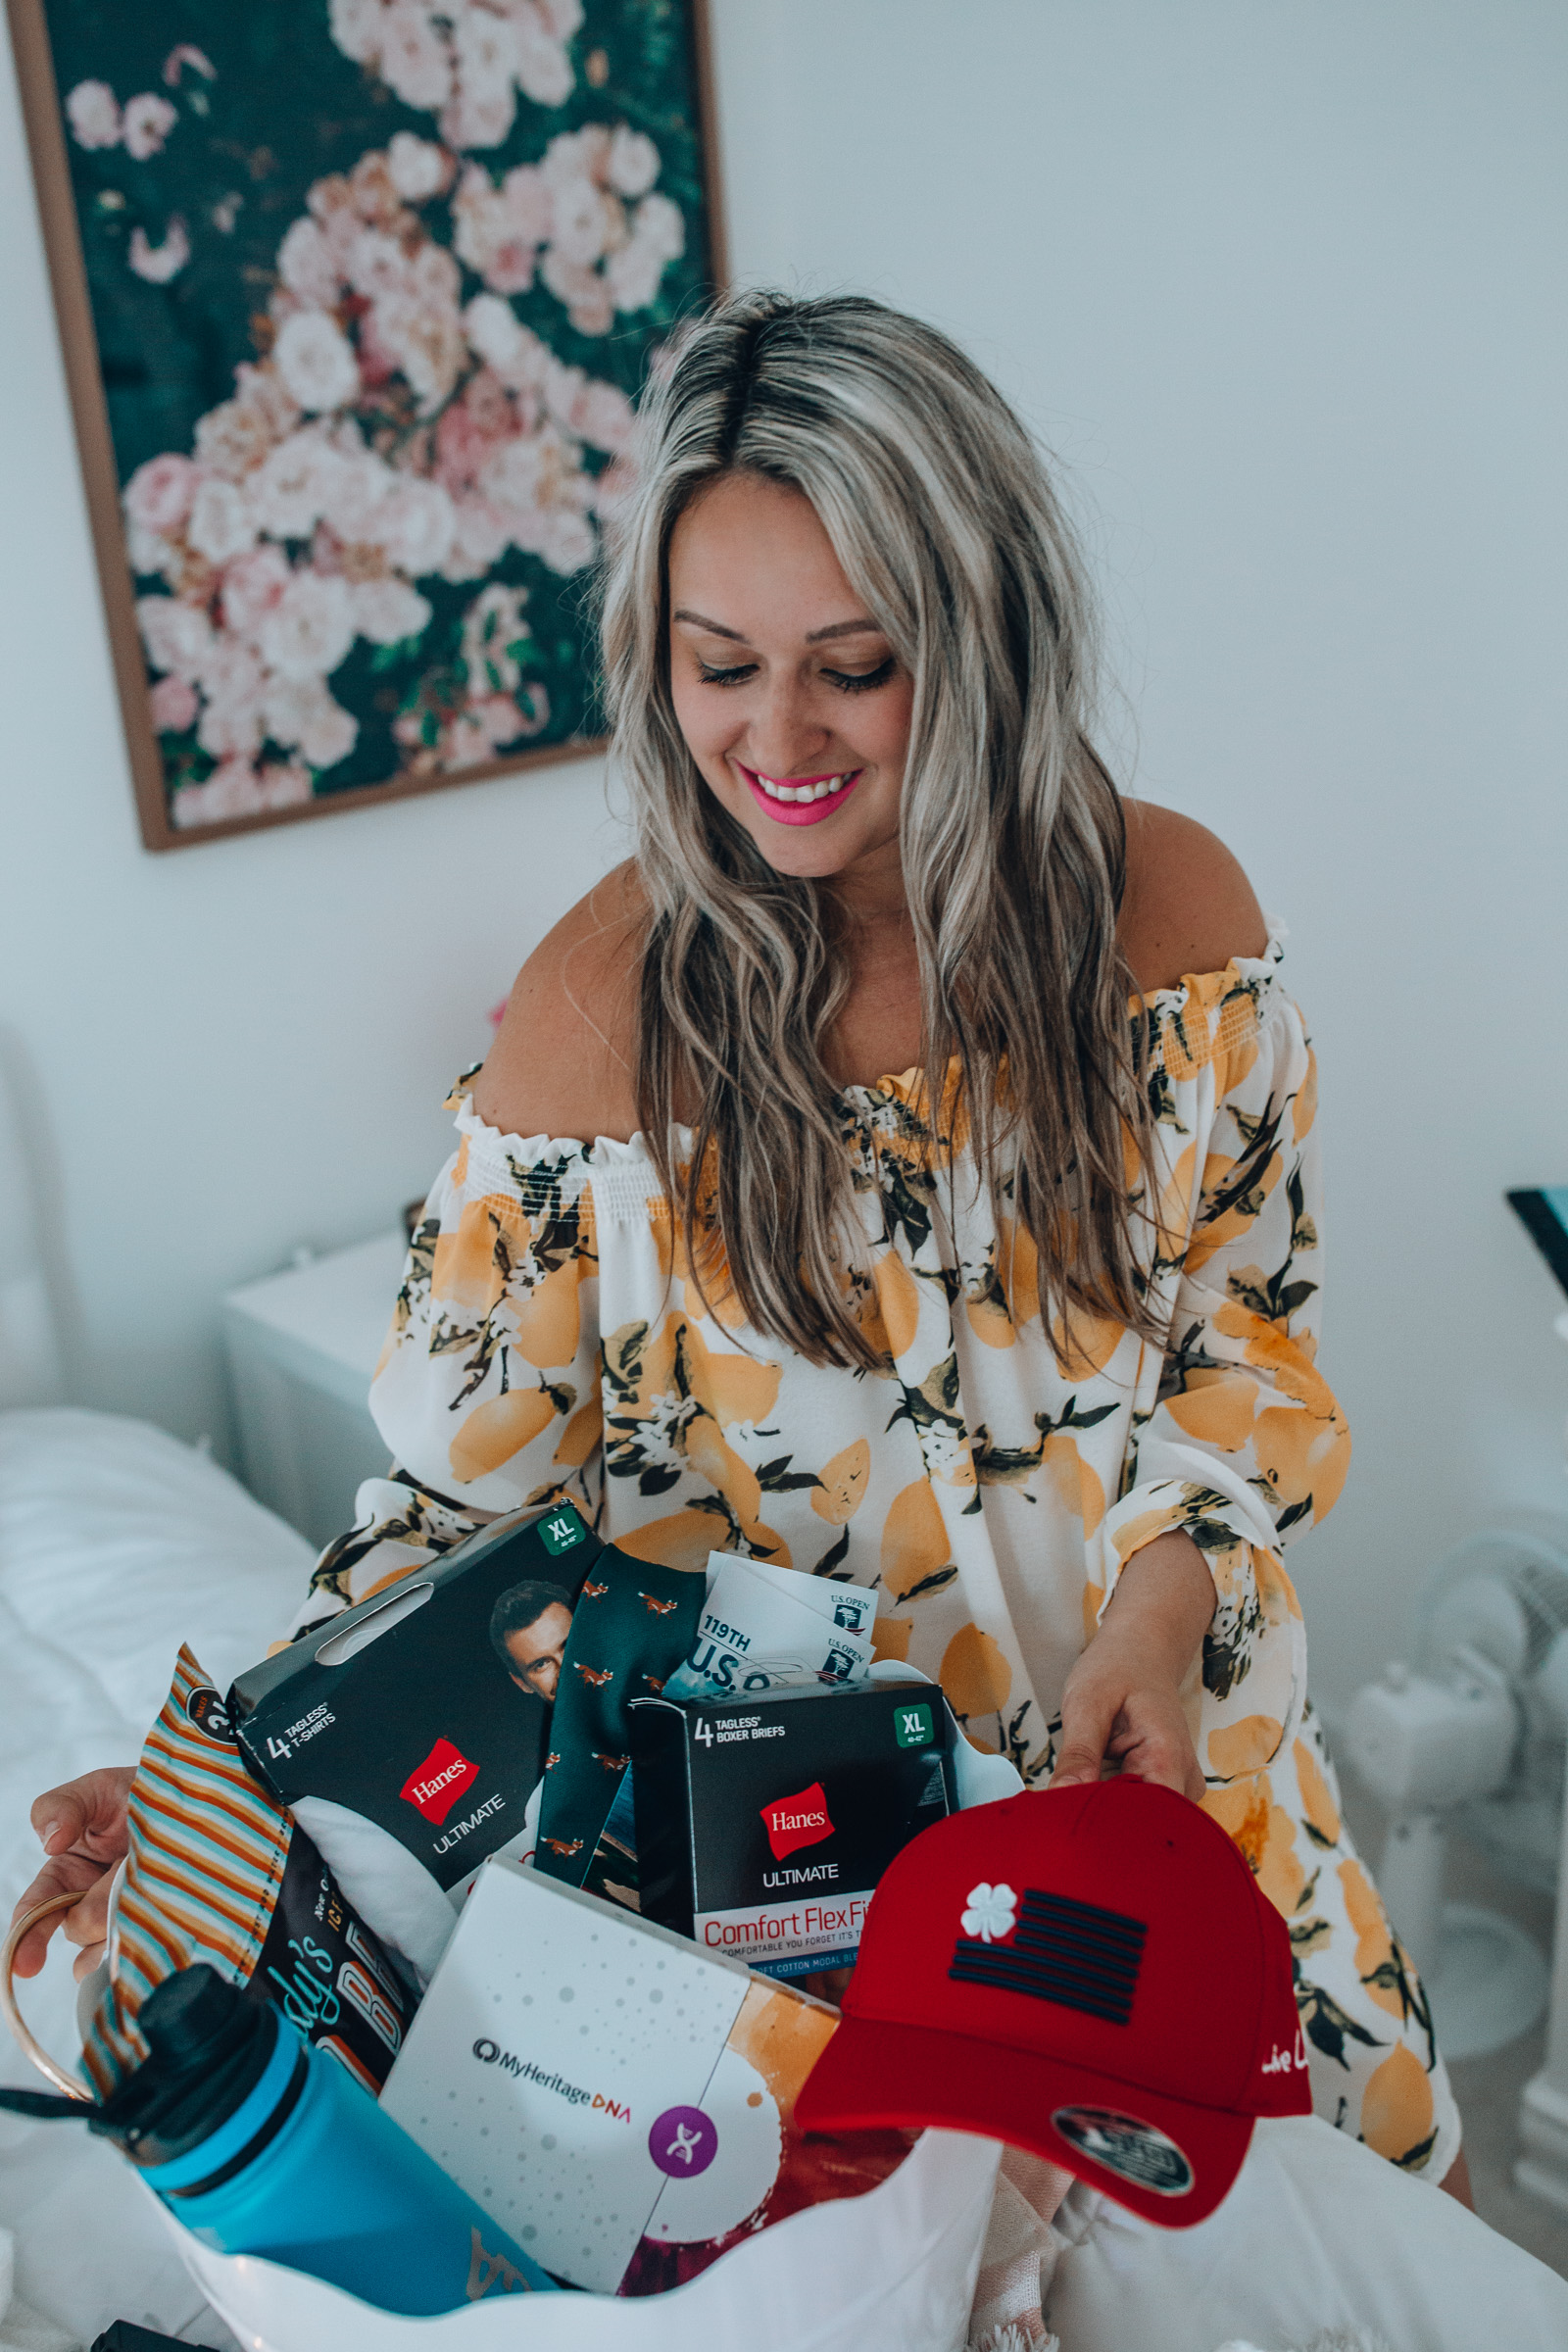 Chicago lifestyle blogger Happily Inspired is rounding up her favorite gifts for my fellow last-minute shoppers in this father's day gift guide.